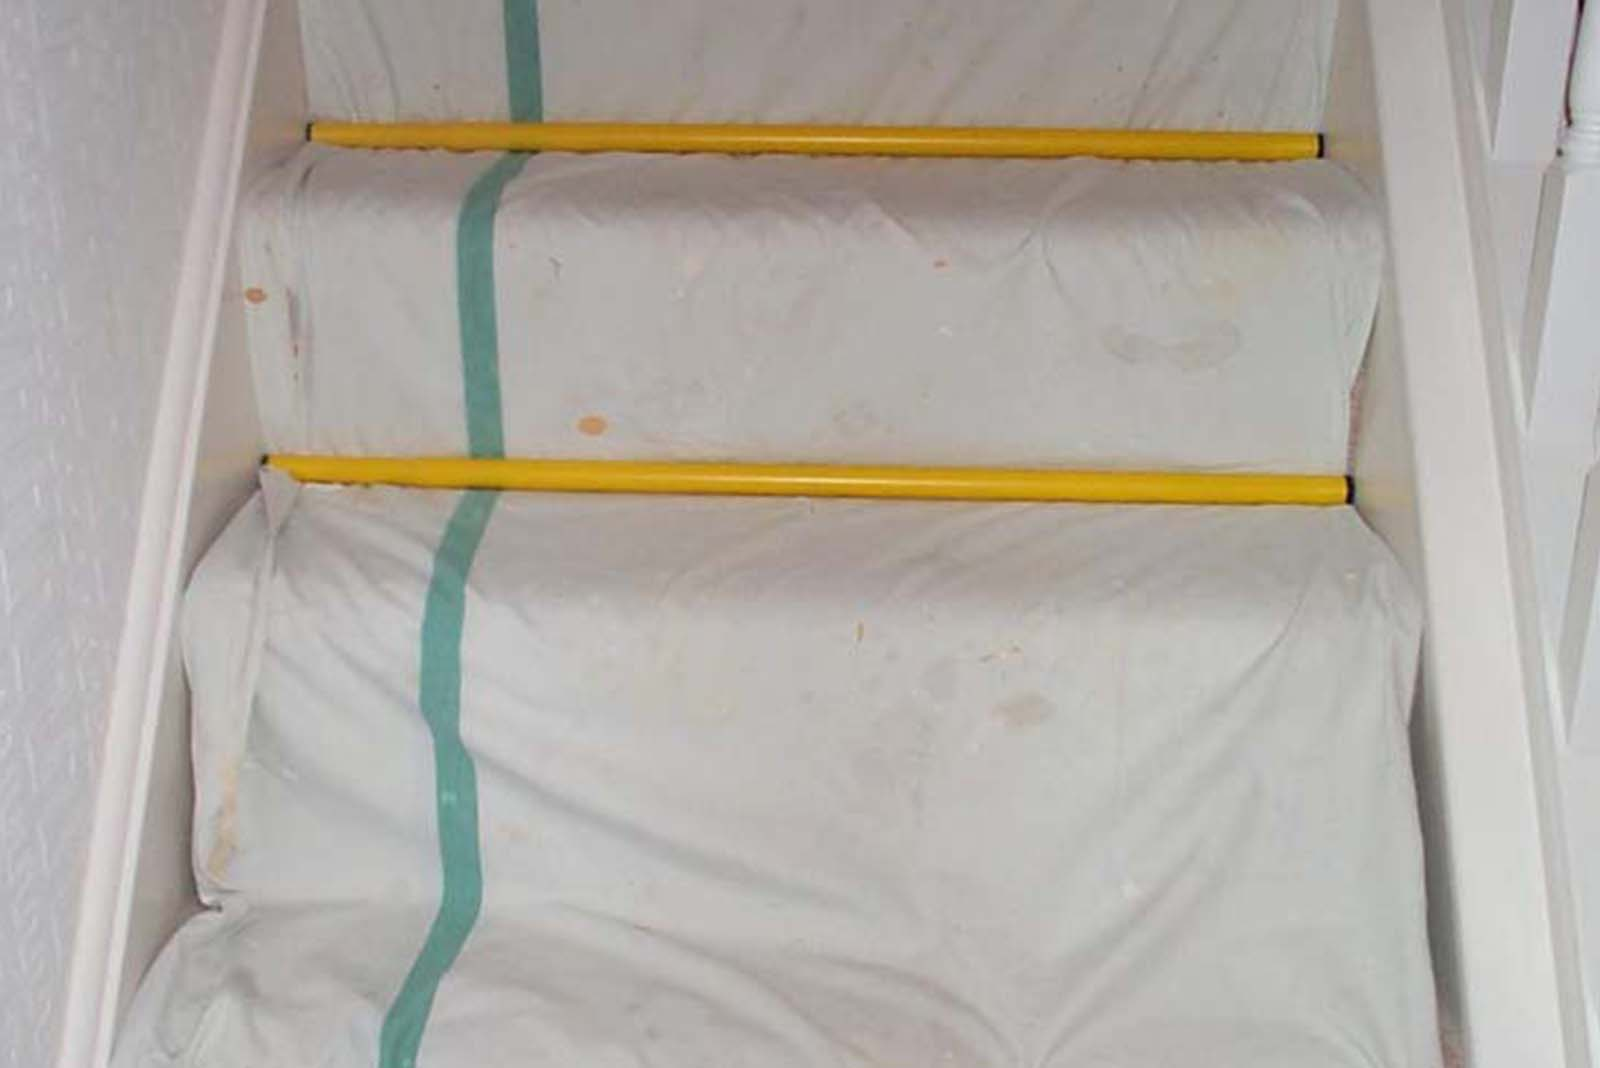 10 Stair Rods to win